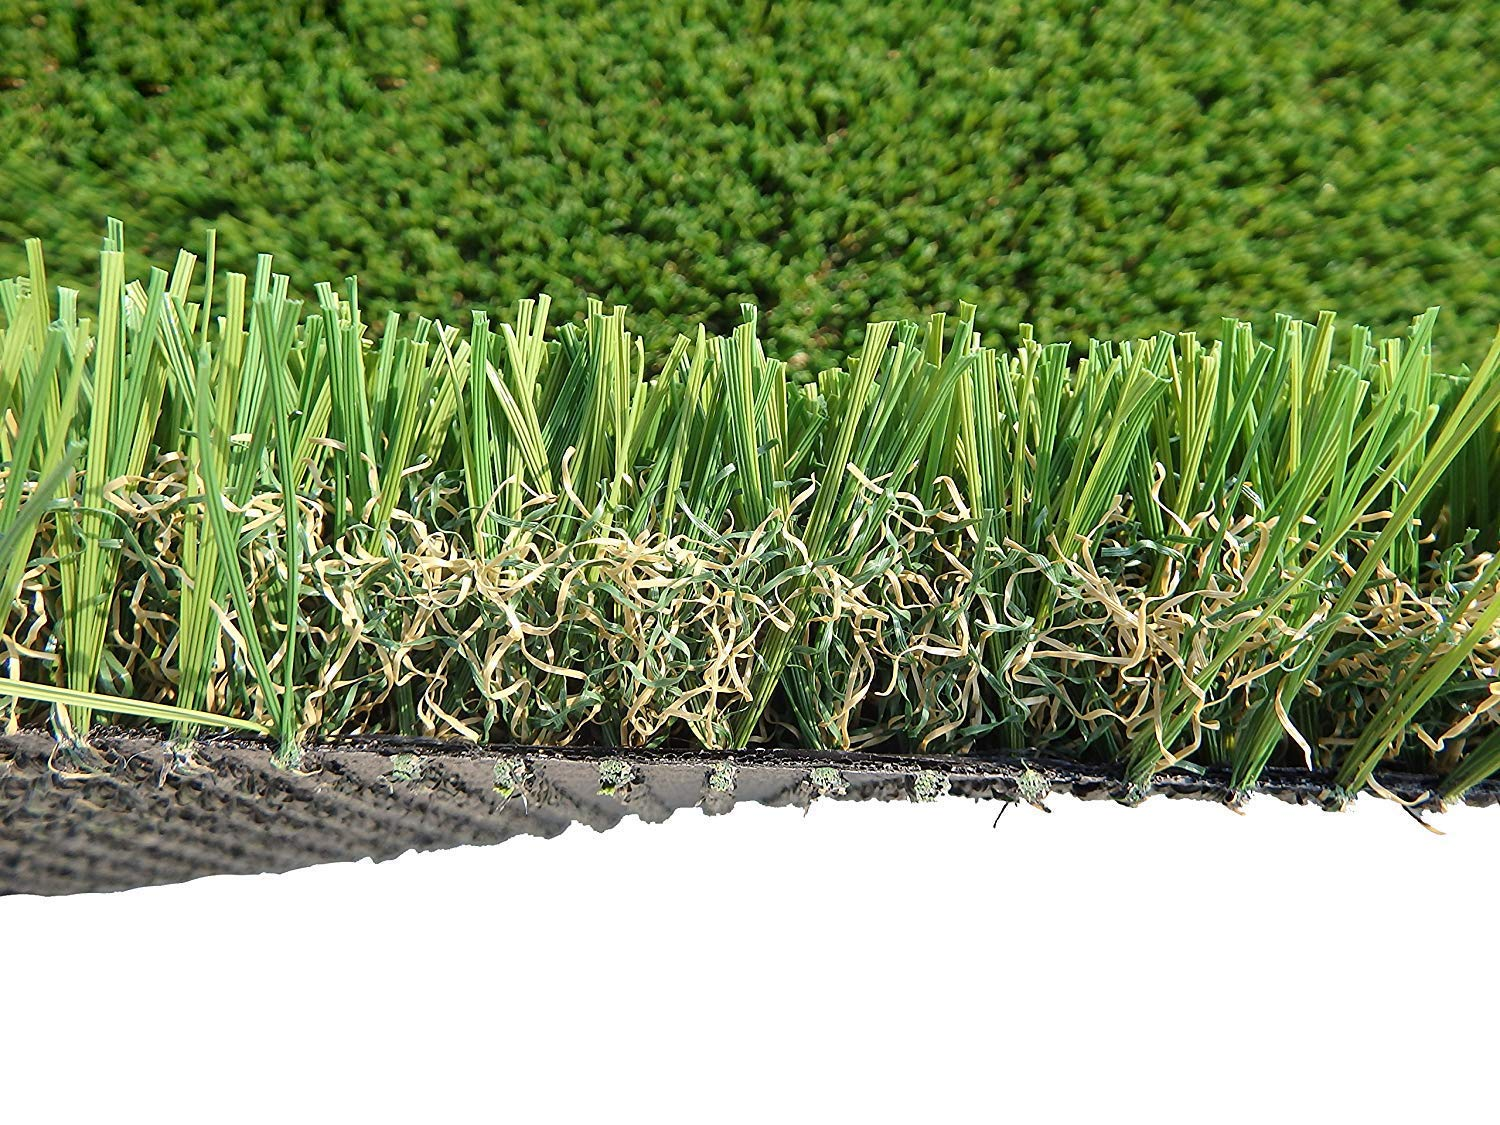 PZG Commerical Artificial Grass Patch w/ Drainage Holes & Rubber Backing   Extra-Heavy & Durable Turf   Lead-Free Fake Grass for Dogs or Outdoor Decor   Total Wt. - 103 oz & Face Wt. 75 oz   12' x 6'